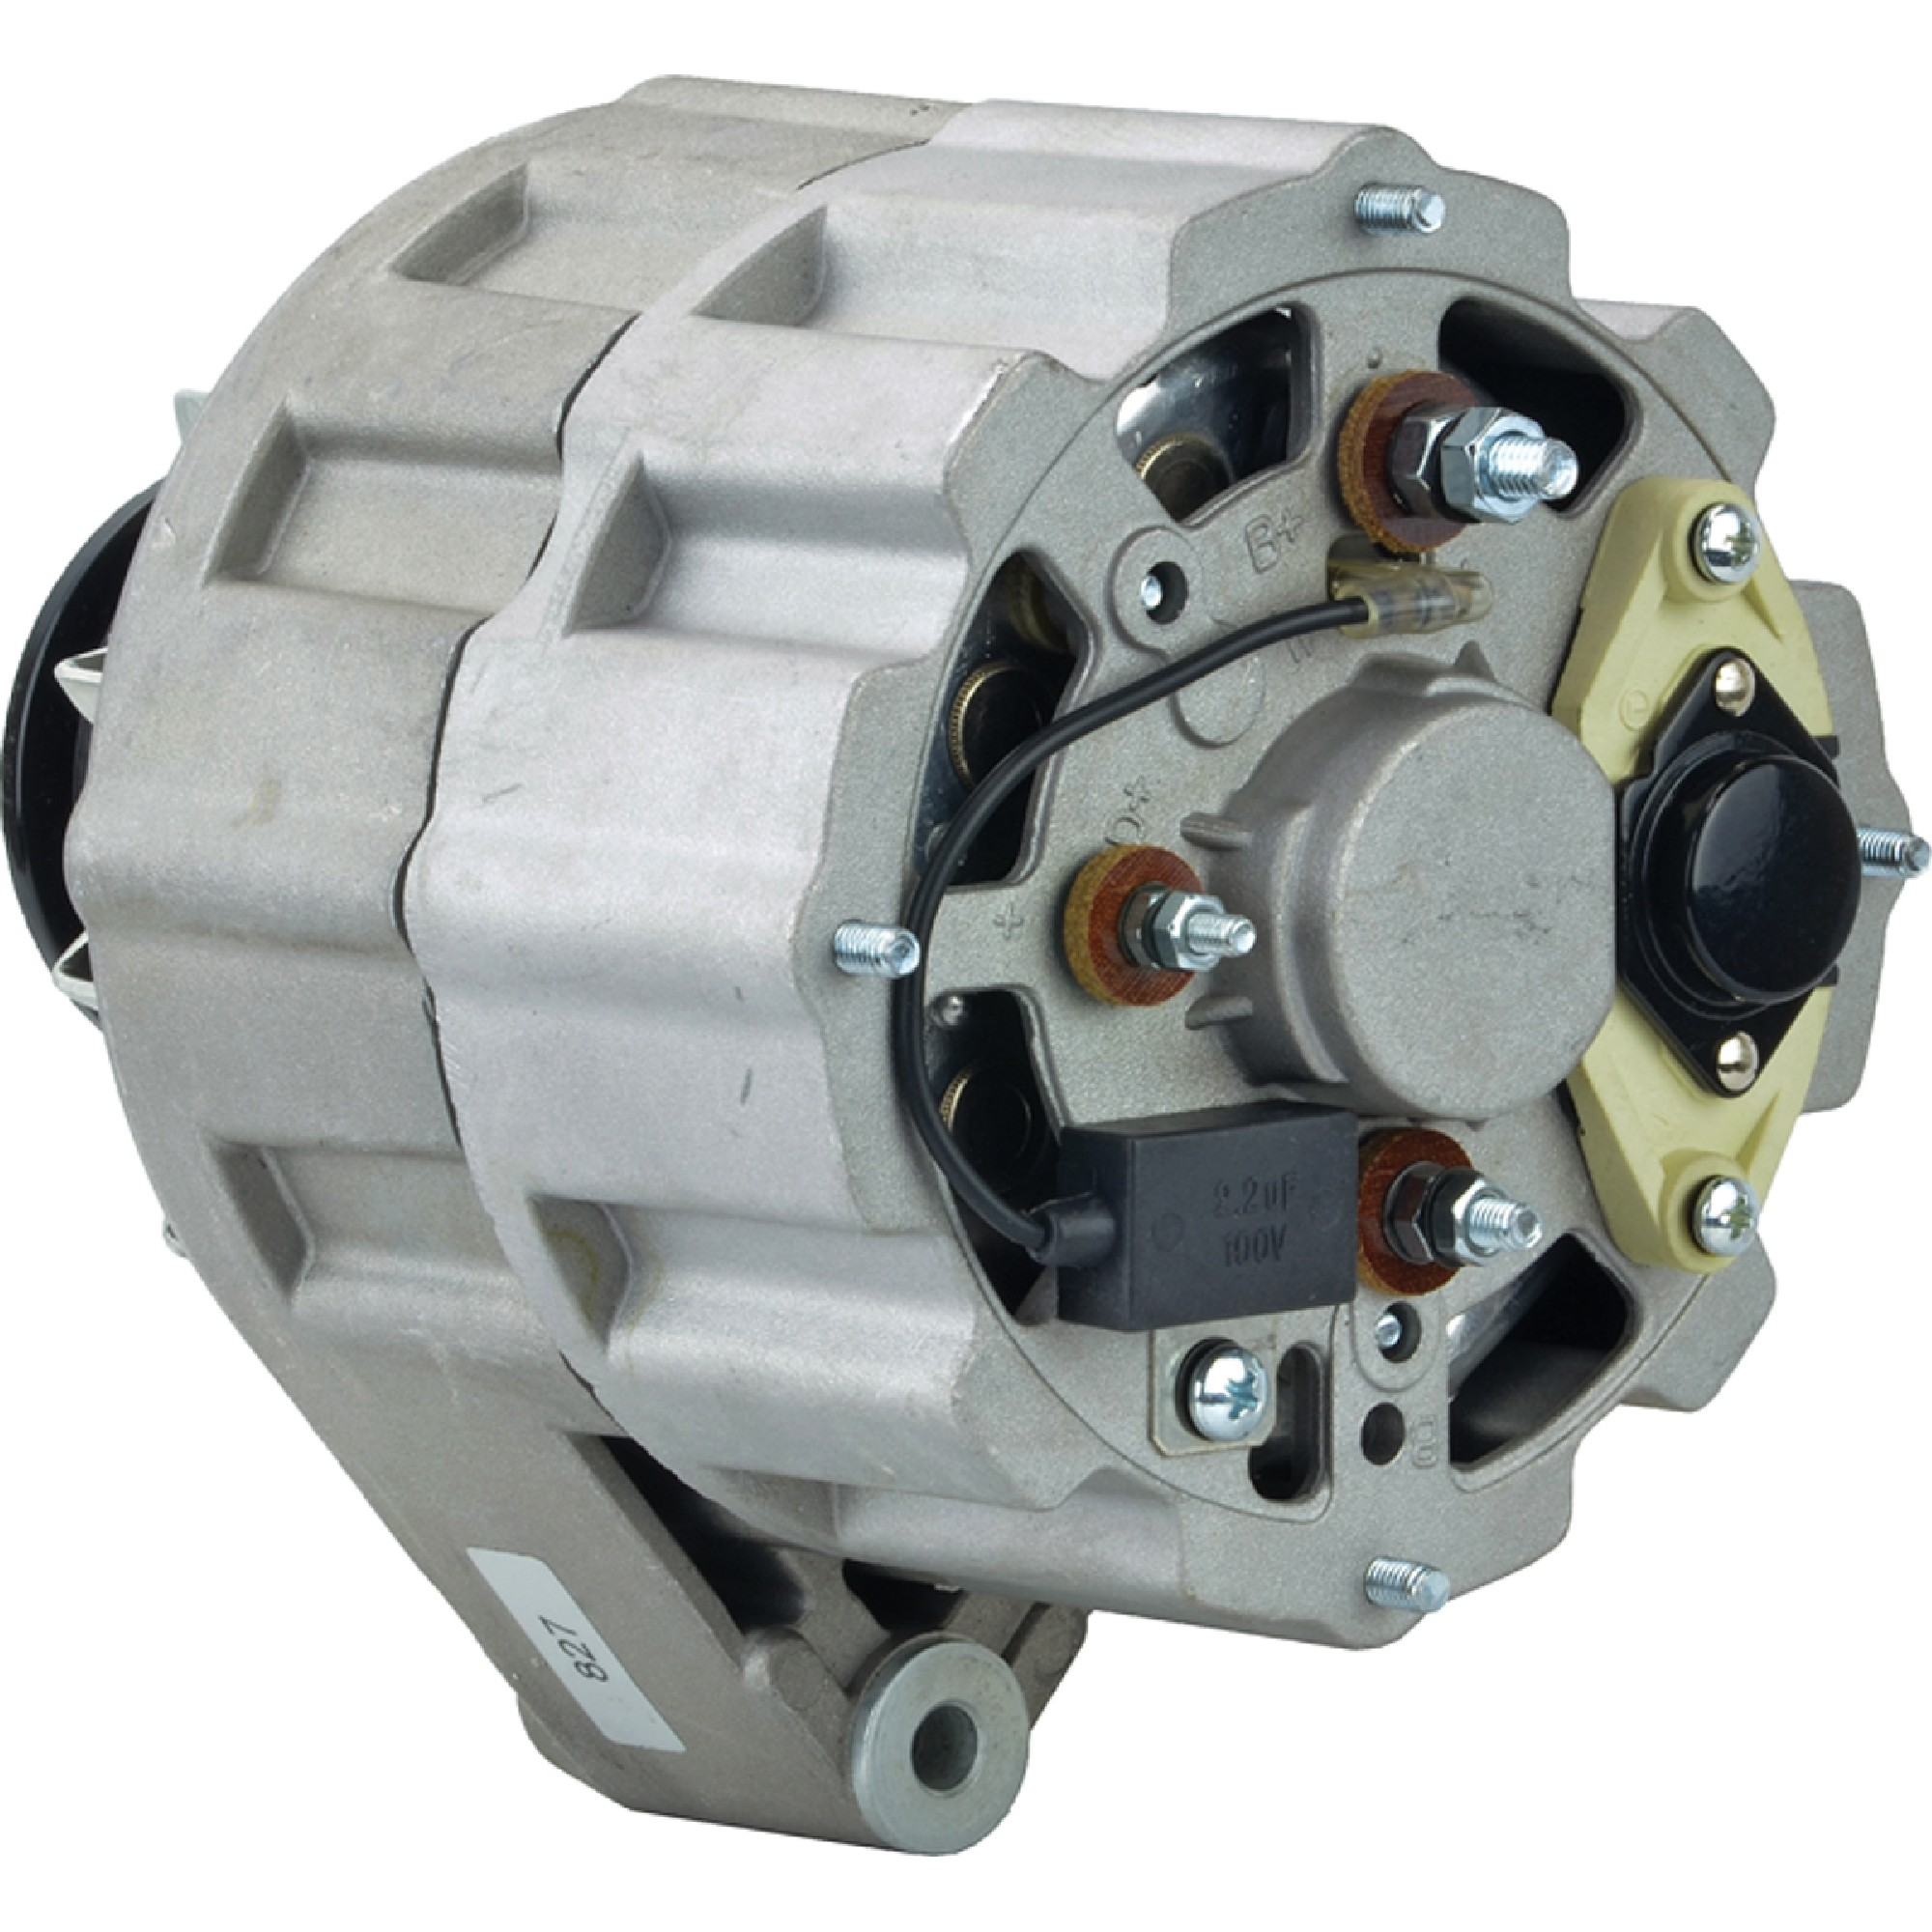 New Alternator For 22 0l 24v 12375 110117 1172649 2489731